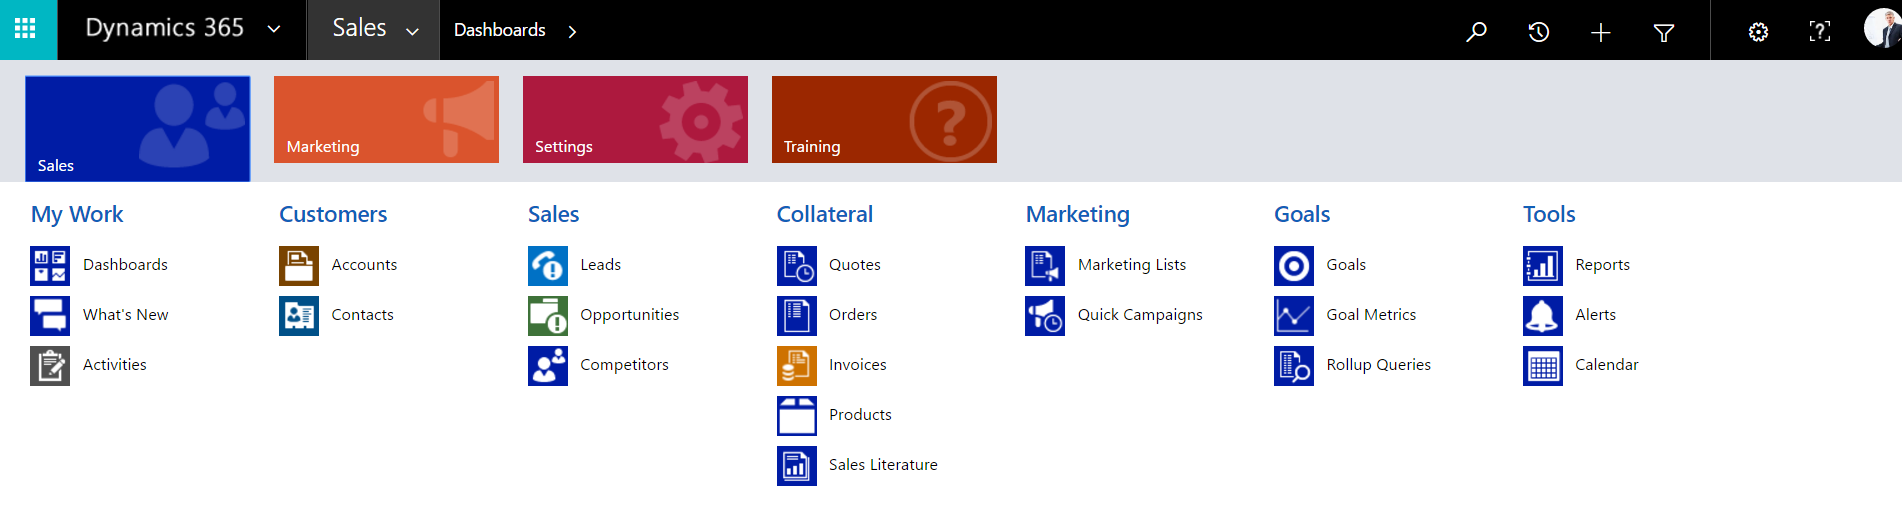 Dynamics CRM 2013] 2 ways to hide/show a section